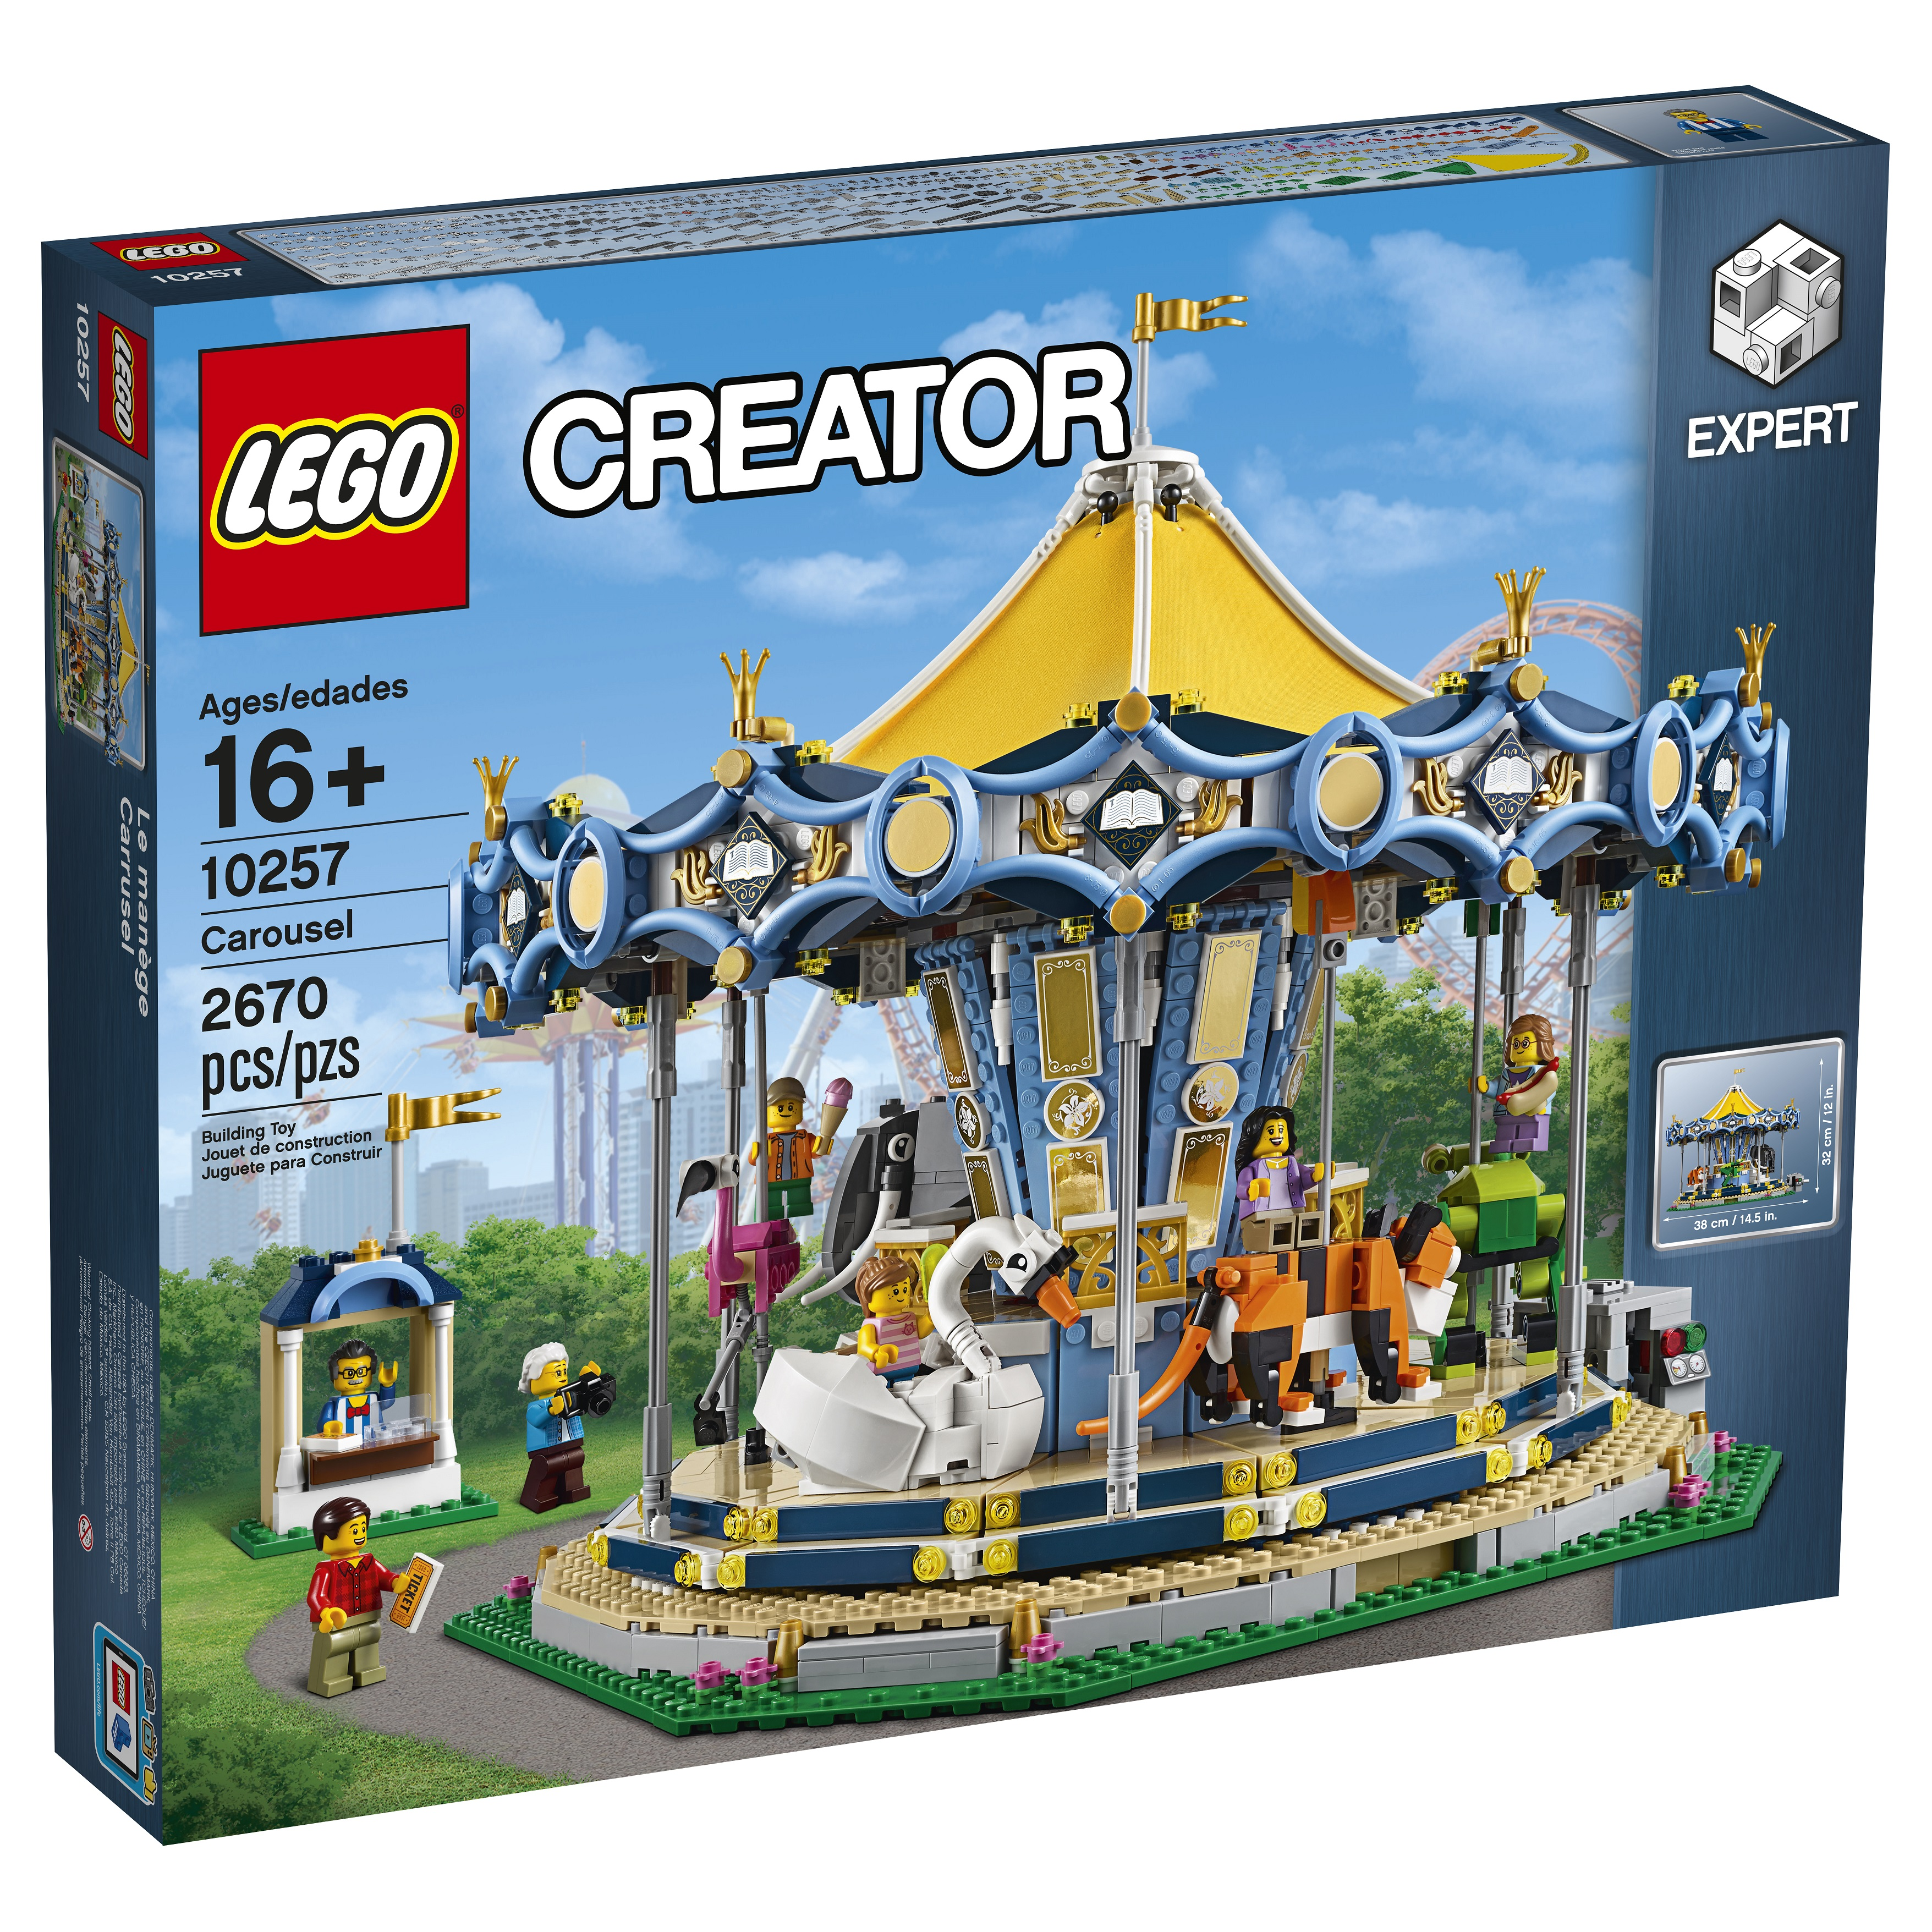 LEGO 10257 Creator Carousel is the latest attraction at the